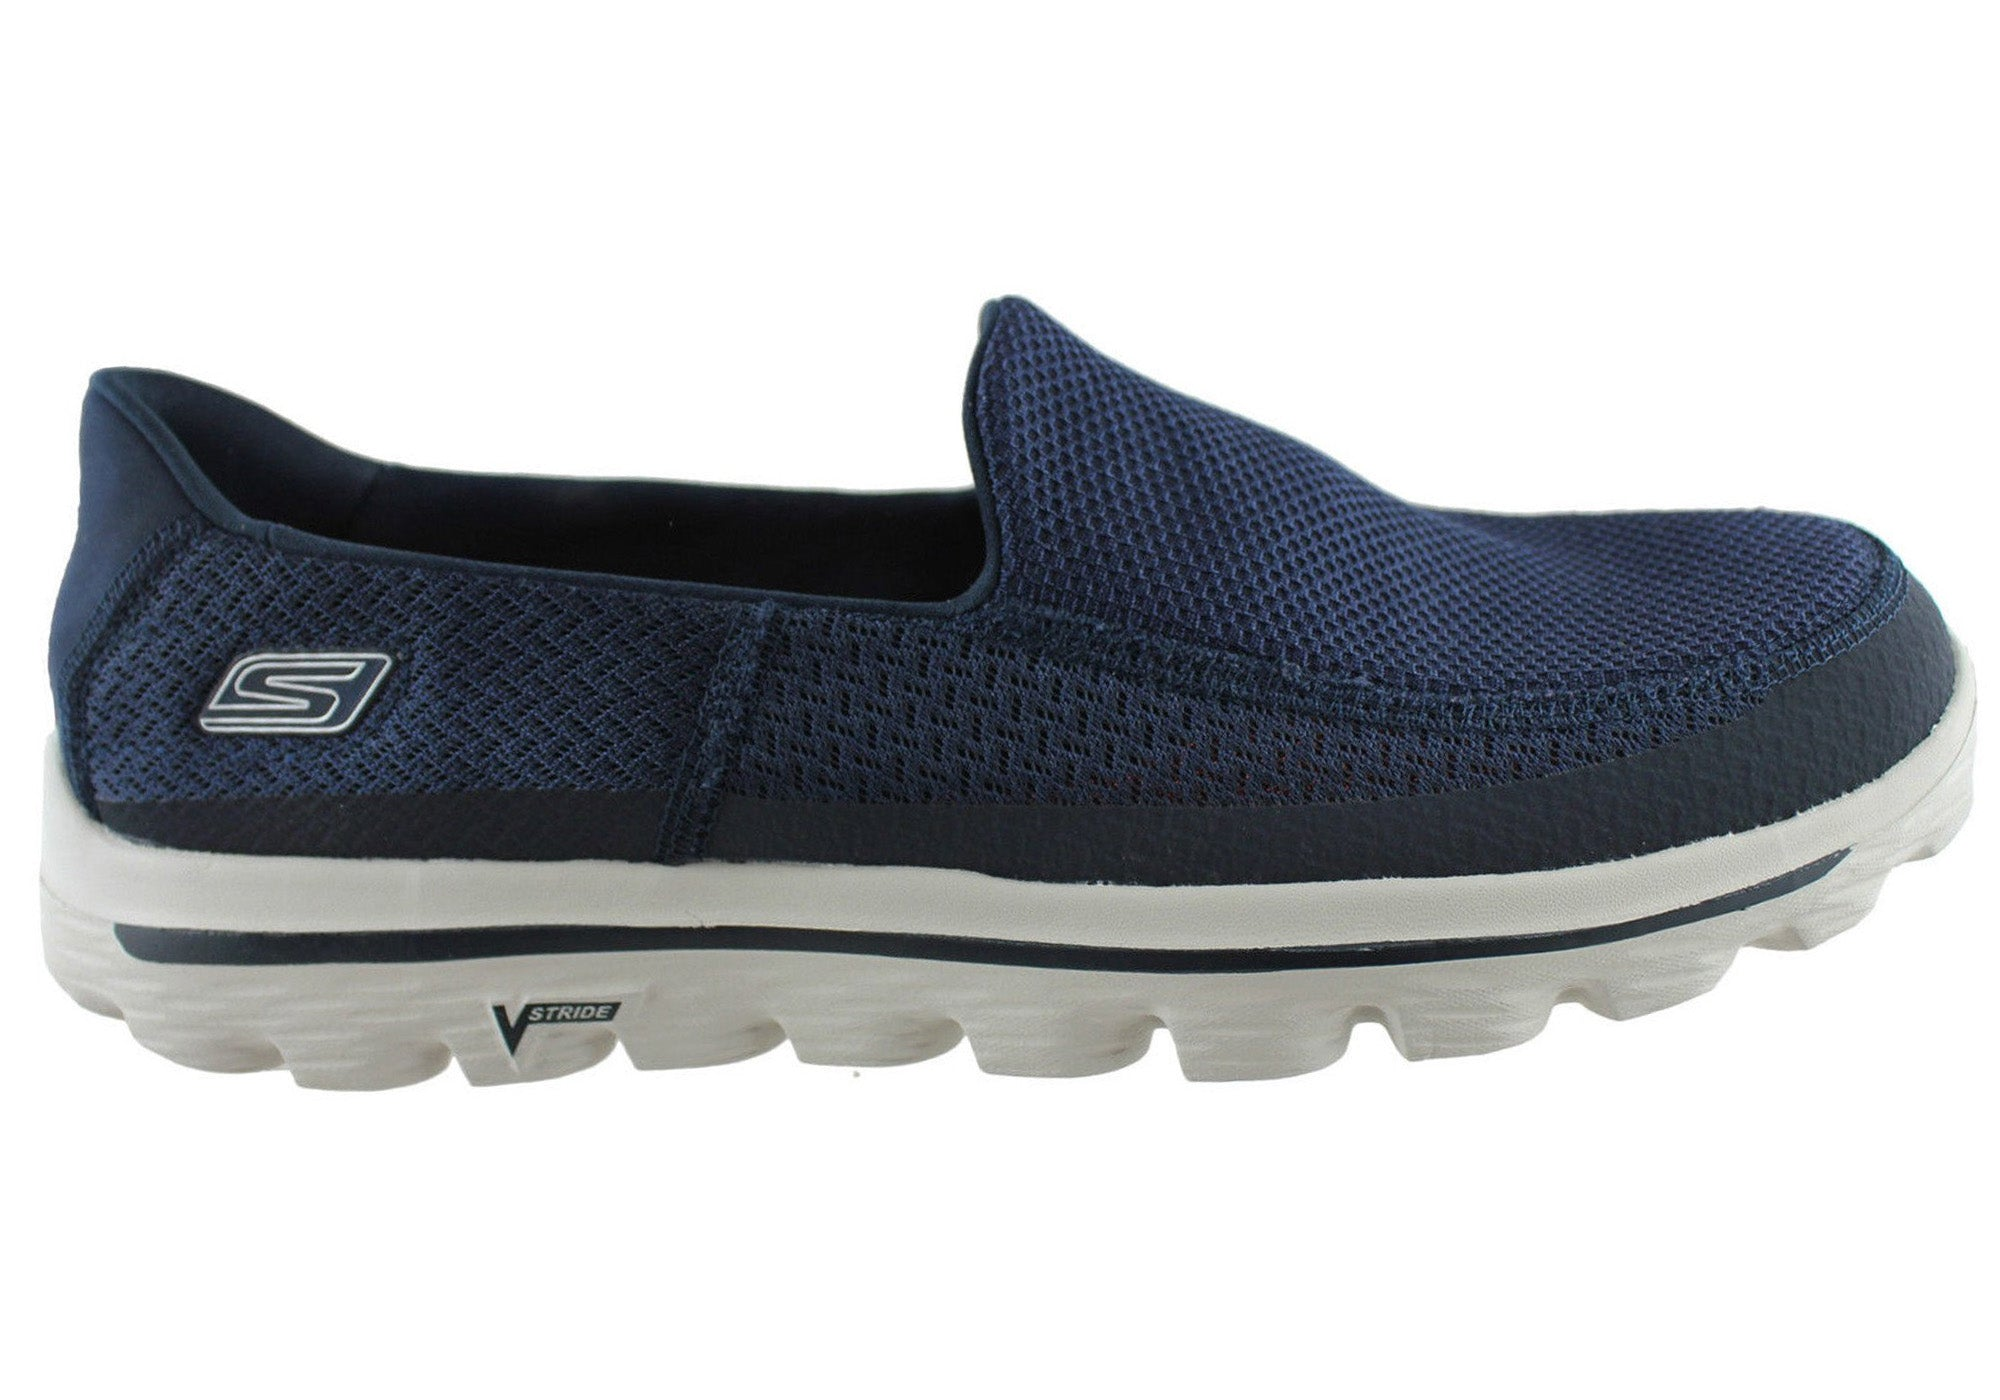 NEW SKECHERS GO WALK 2 MENS COMFORTABLE